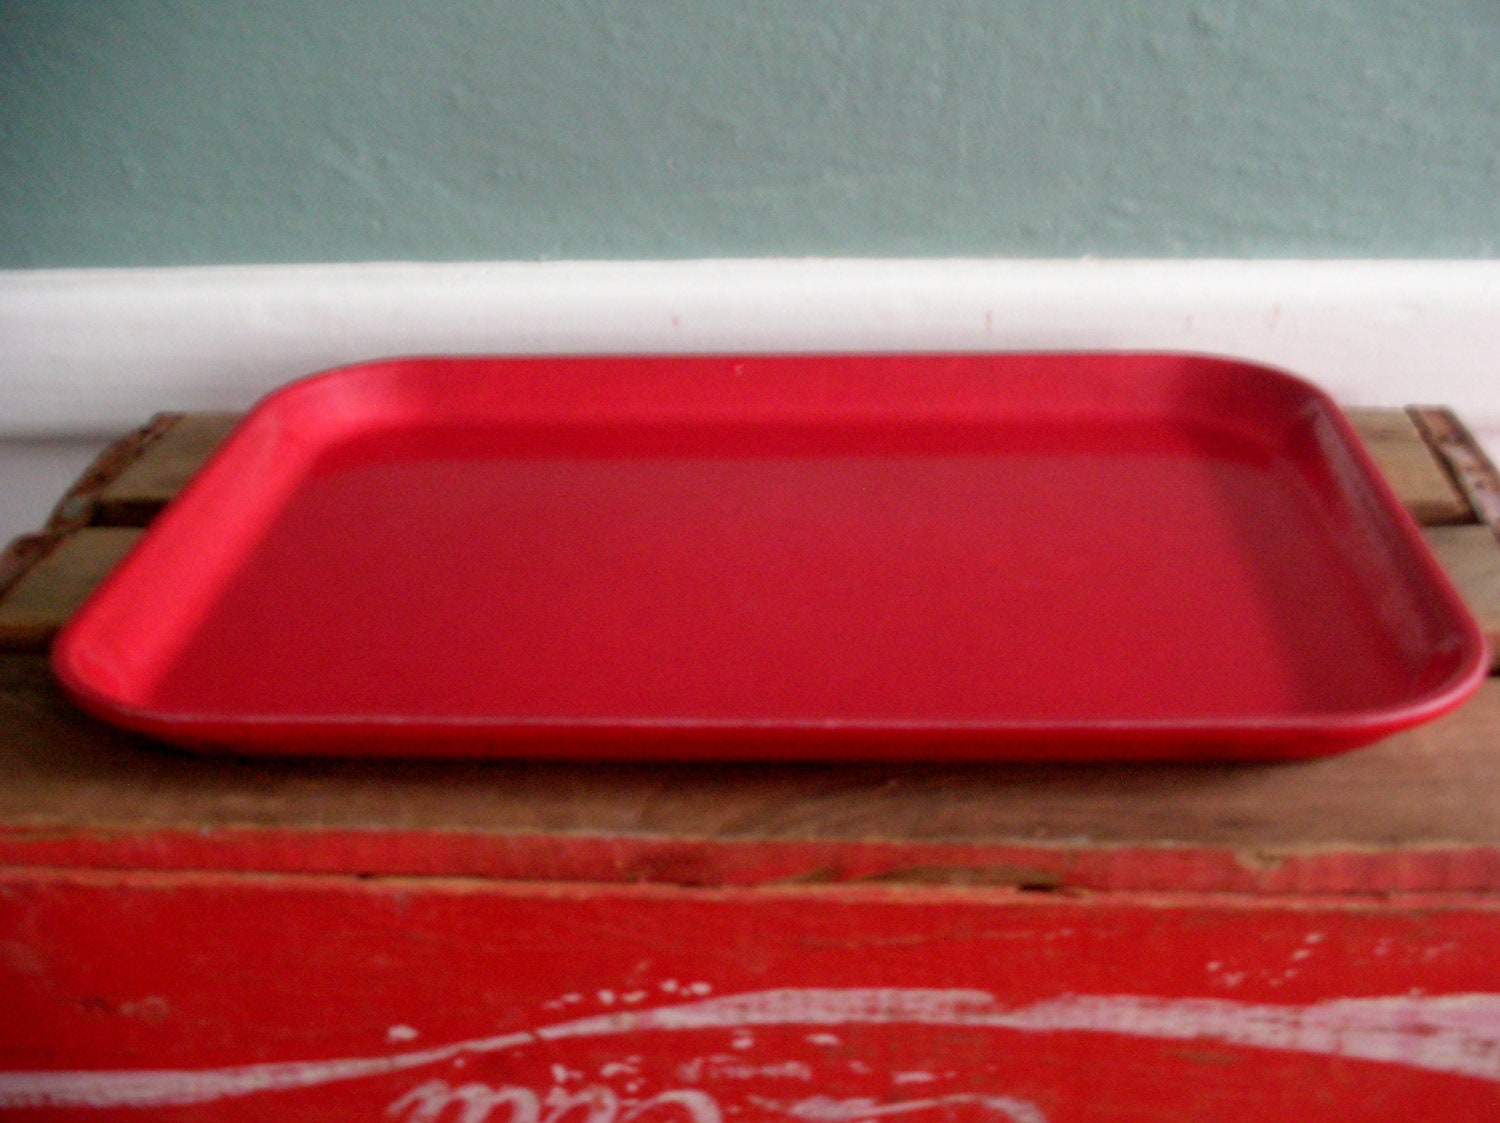 Red kitchen tray or school lunch tray by cocobearshoneyhole